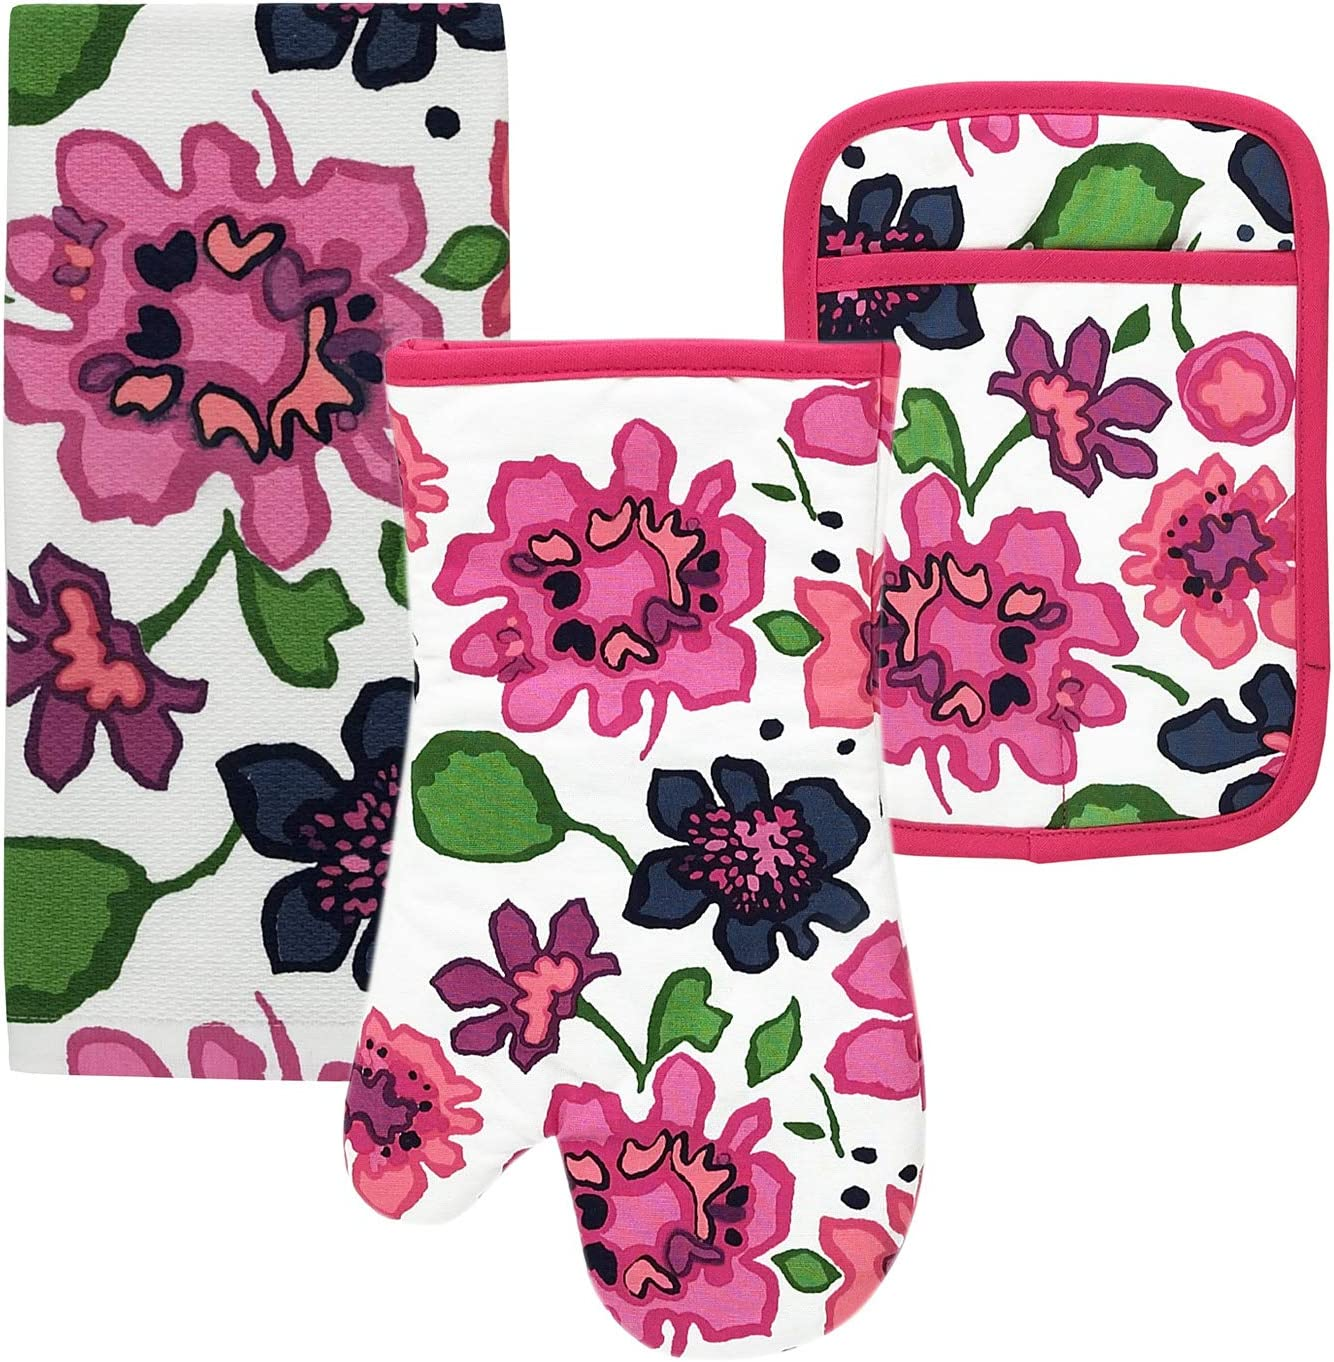 Store Kate Spade Floral Blockprint Kitchen Towel and Manufacturer direct delivery Oven H Pot Mitt